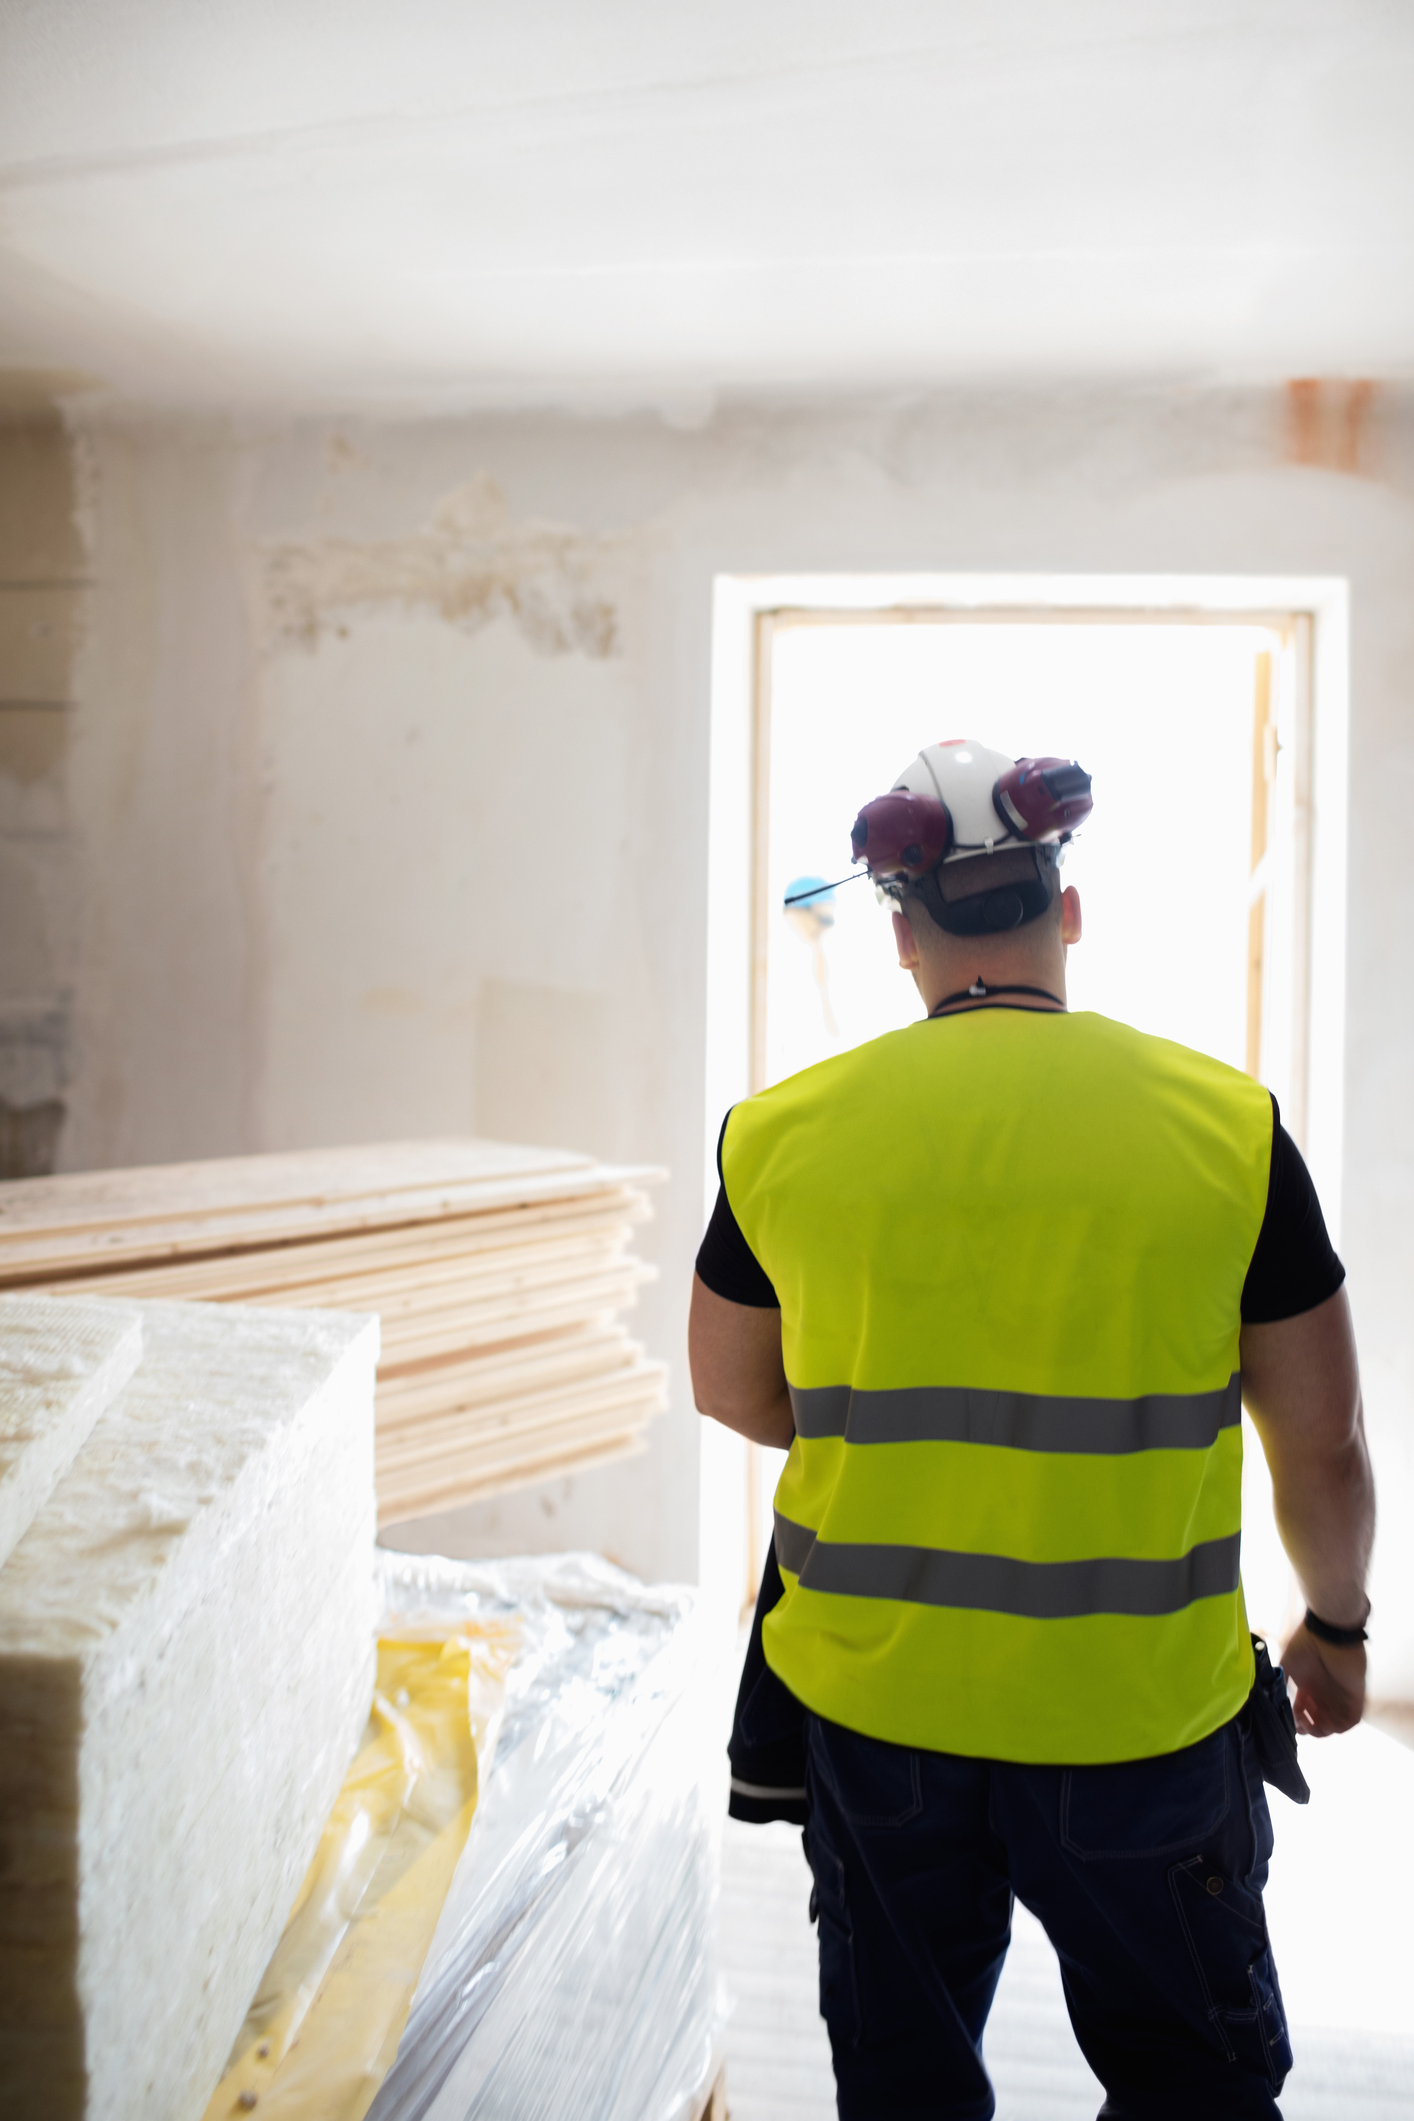 Tommy walsh 39 s top tips on finding a good builder you can trust for Find a good builder